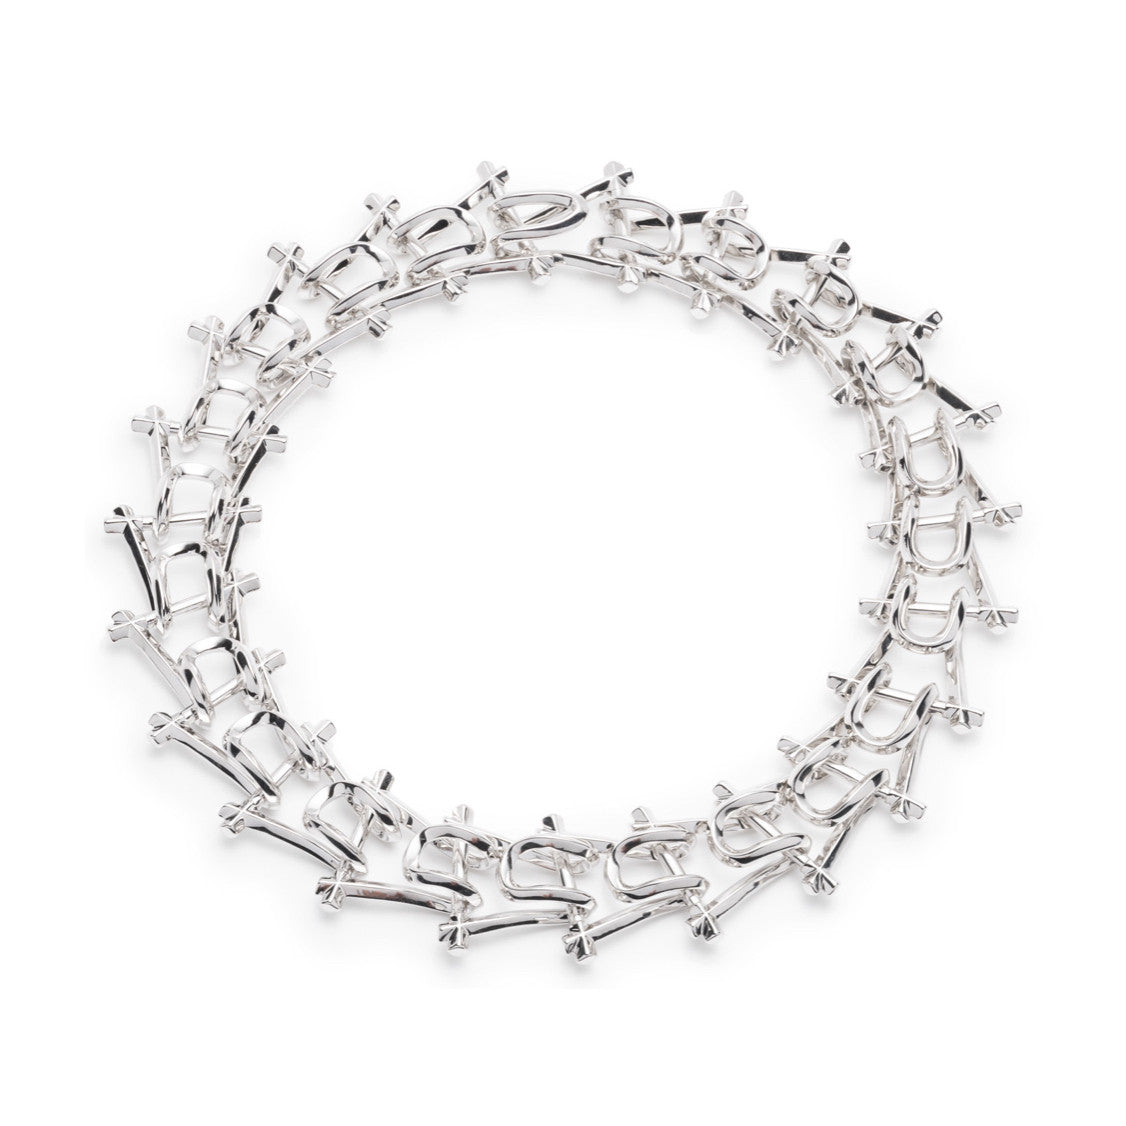 MARCY LINK NECKLACE - SILVER PLATED BRASS